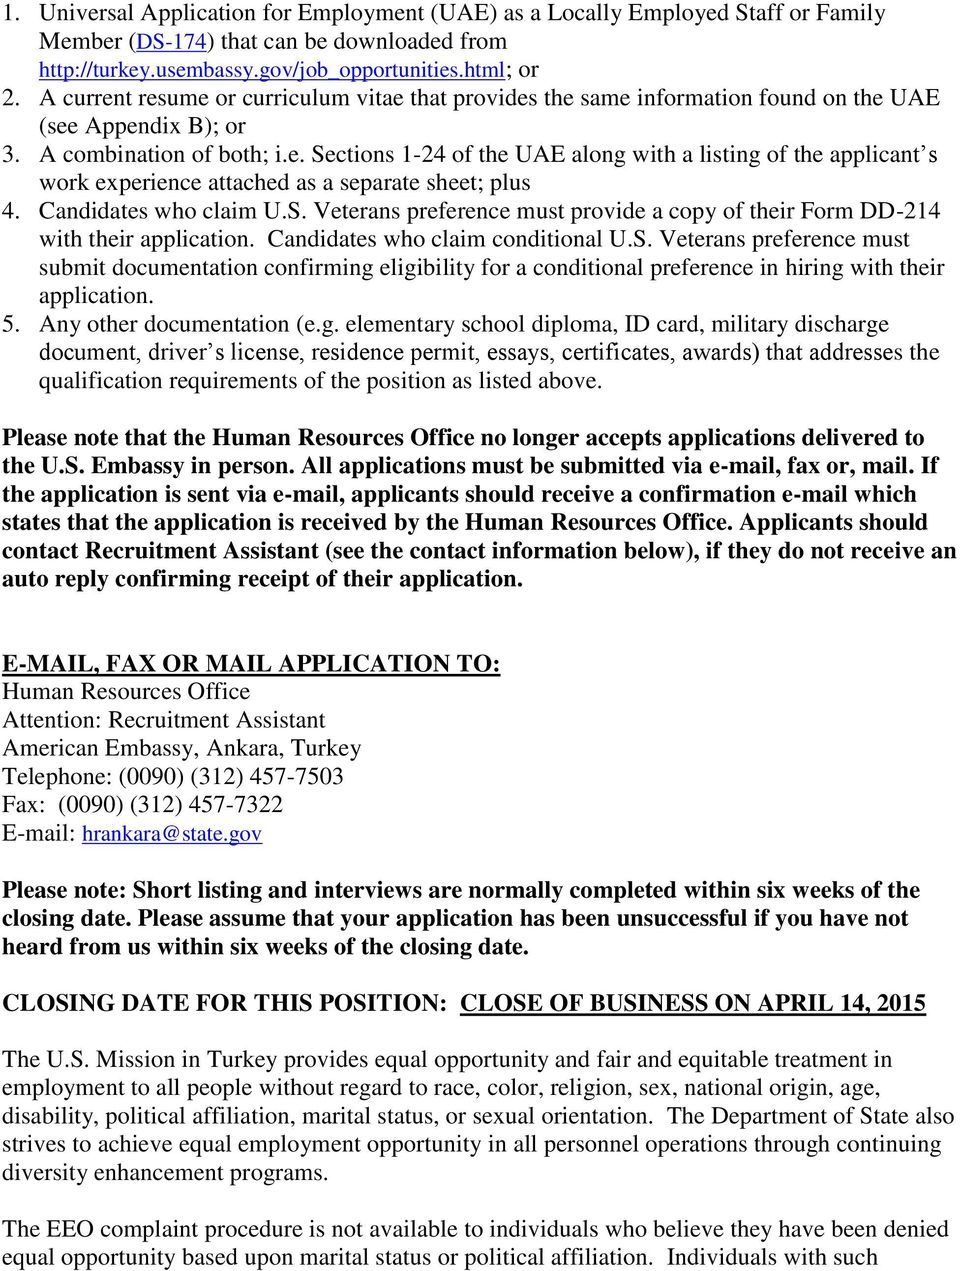 Candidates who claim U.S. Veterans preference must provide a copy of their Form DD-214 with their application. Candidates who claim conditional U.S. Veterans preference must submit documentation confirming eligibility for a conditional preference in hiring with their application.